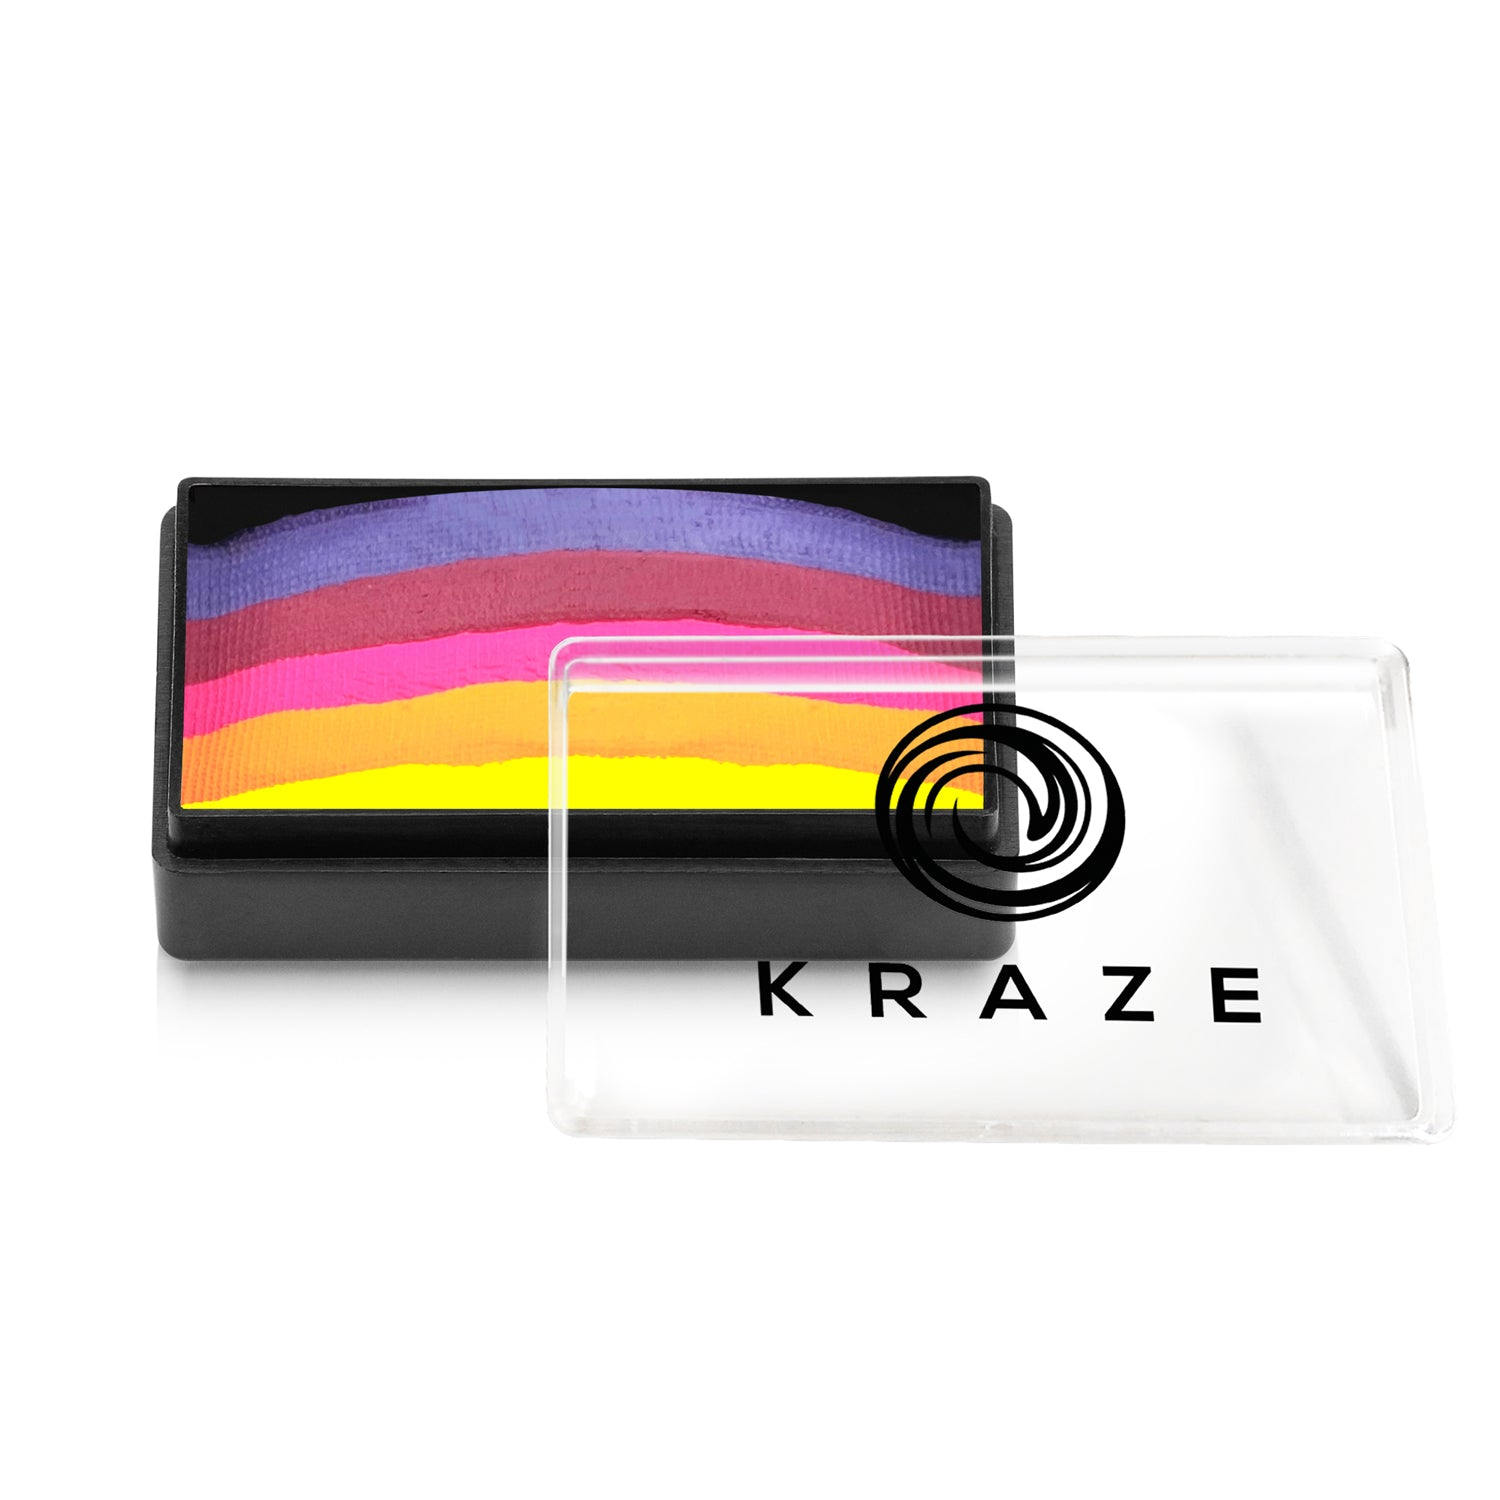 Kraze FX Domed 1-Stroke Neon Split Cake - 25 gm - Royal Sunset